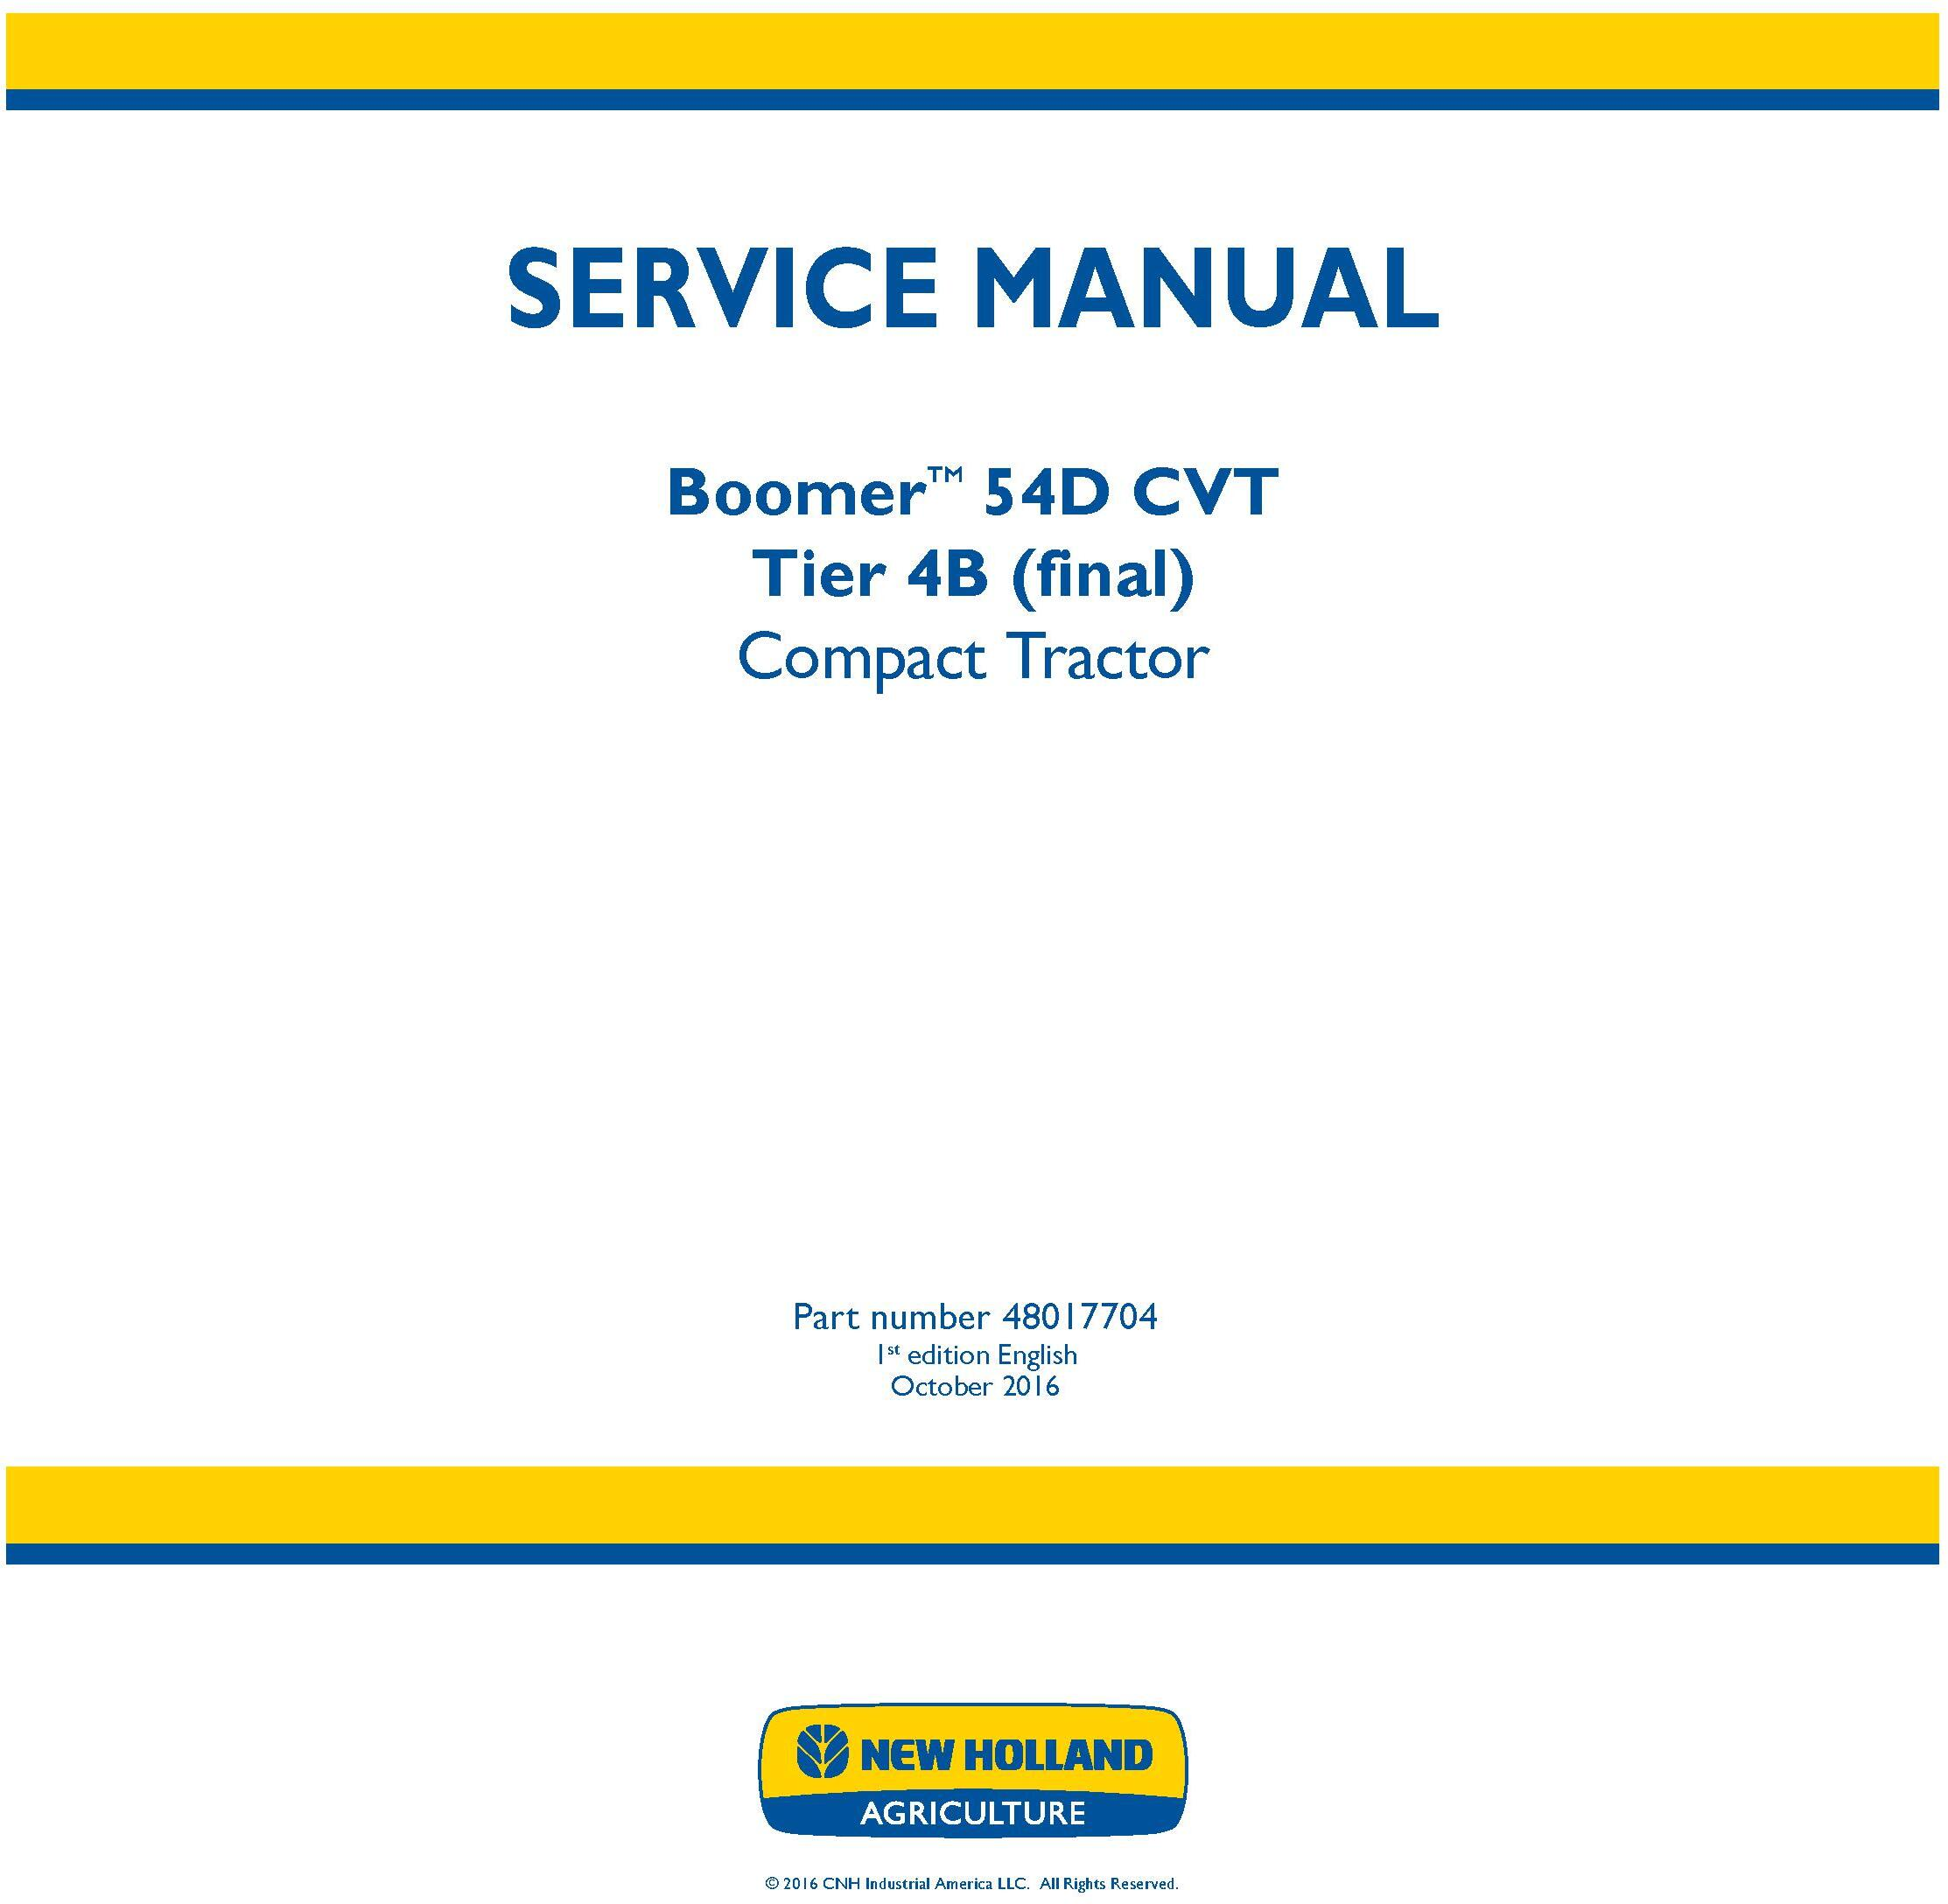 New Holland Boomer 54d Cvt Tier 4b  Final  Compact Tractor Service Manual    Deere Technical Manuals